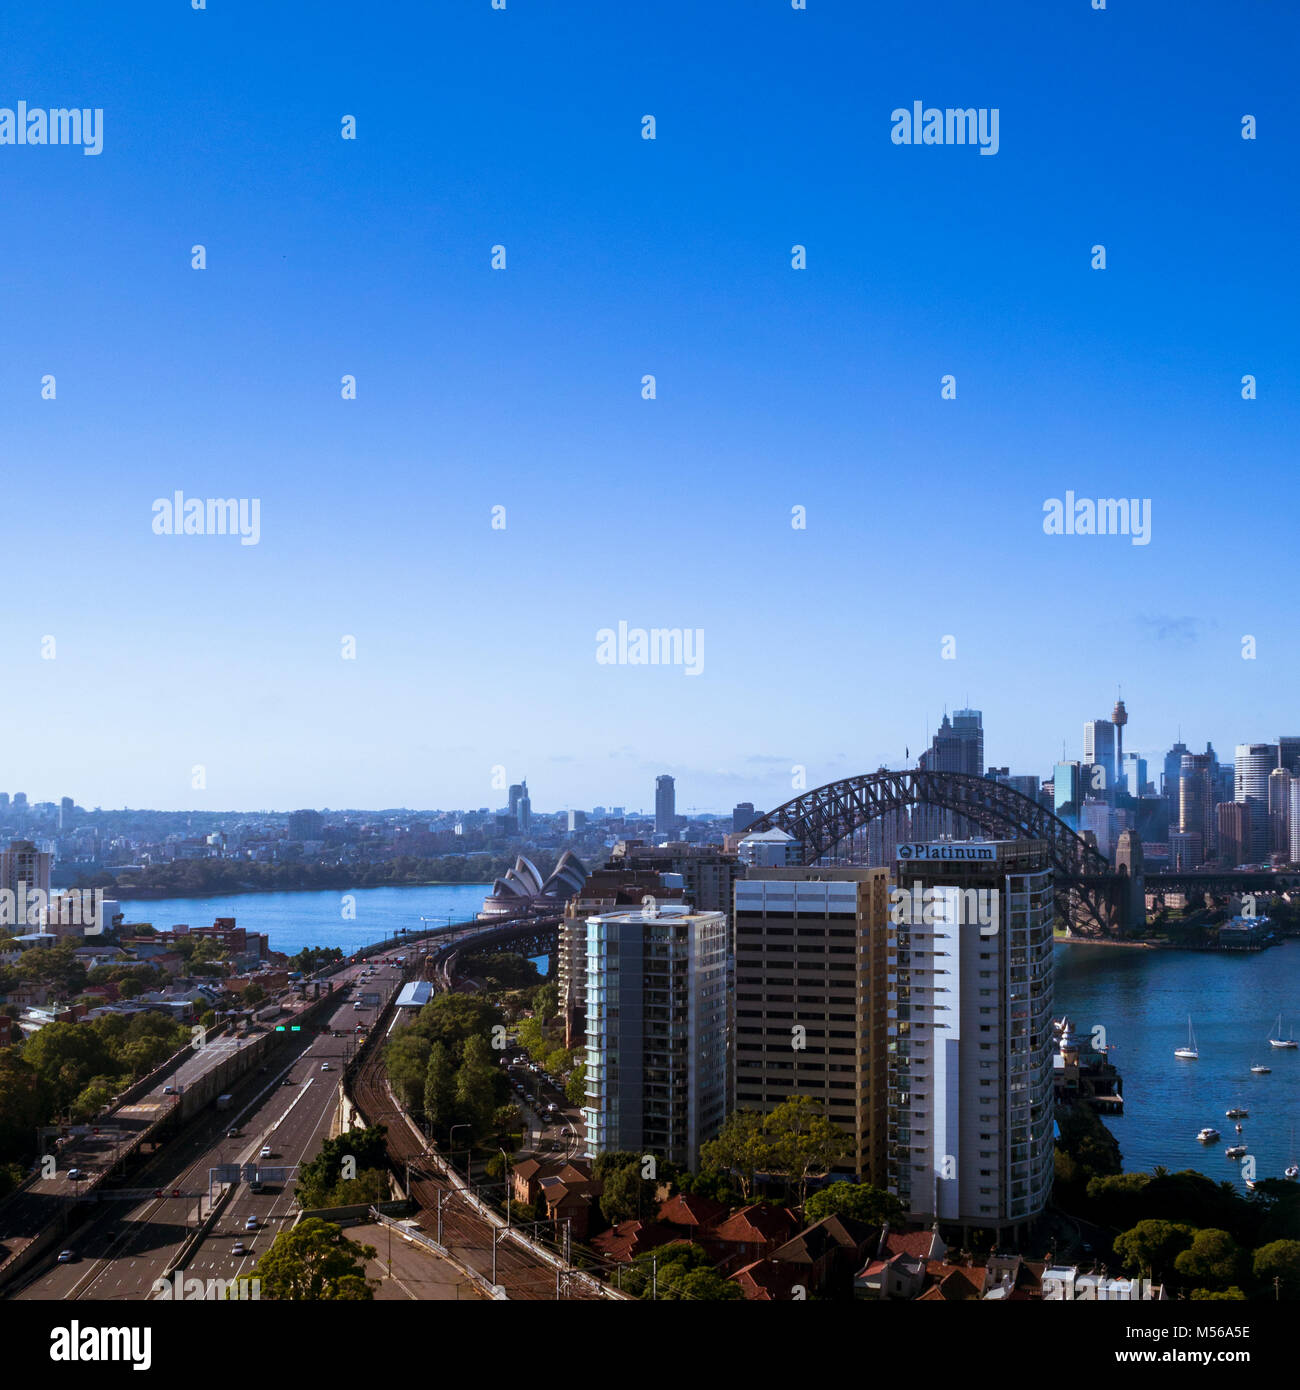 Sydney Harbour view from North Sydney, New South Wales, Australia - Stock Image